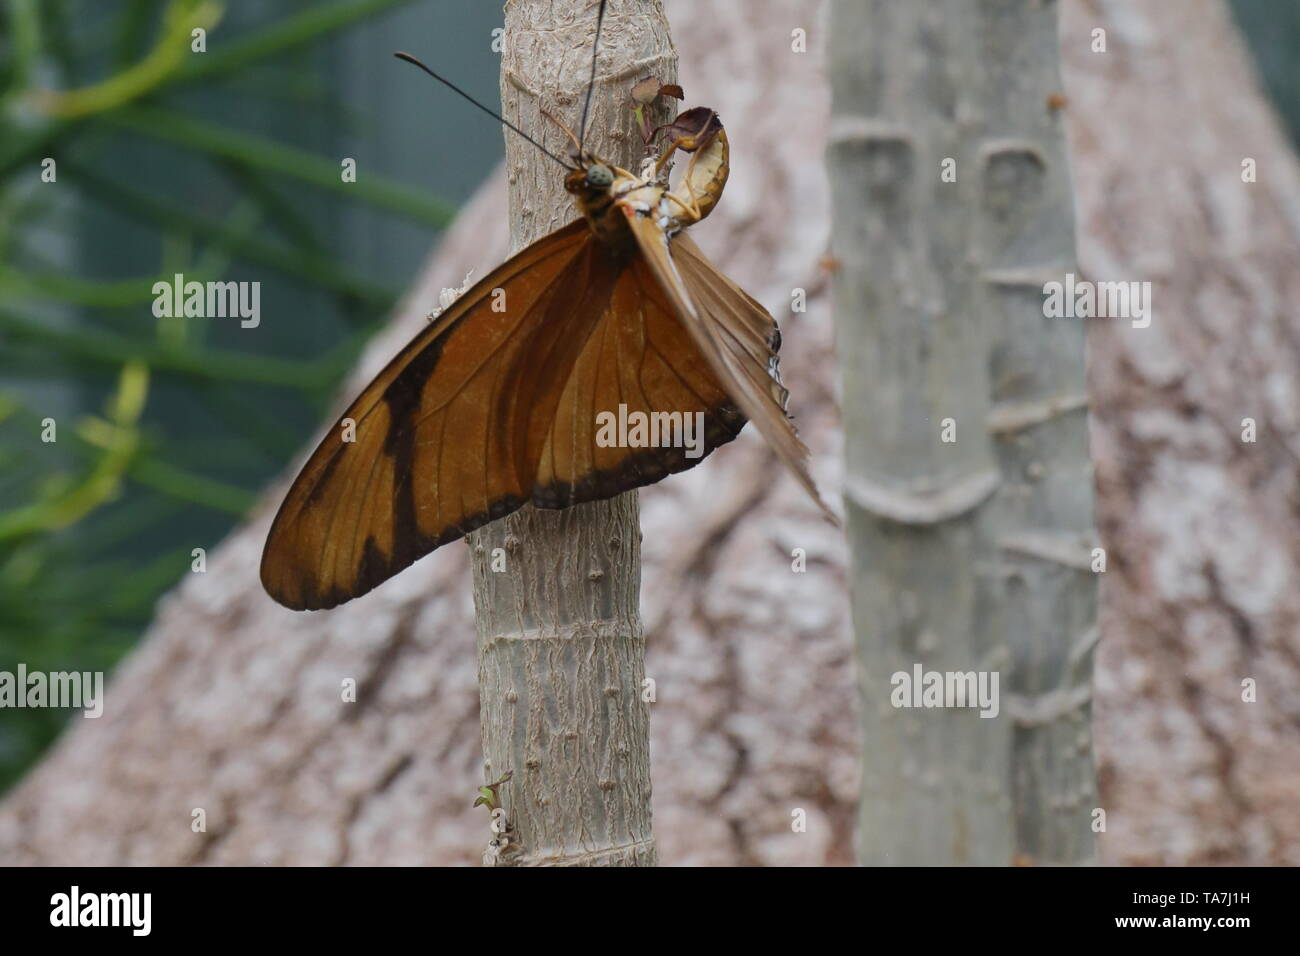 Orange julia butterfly laying an egg on a plant leaf - Stock Image